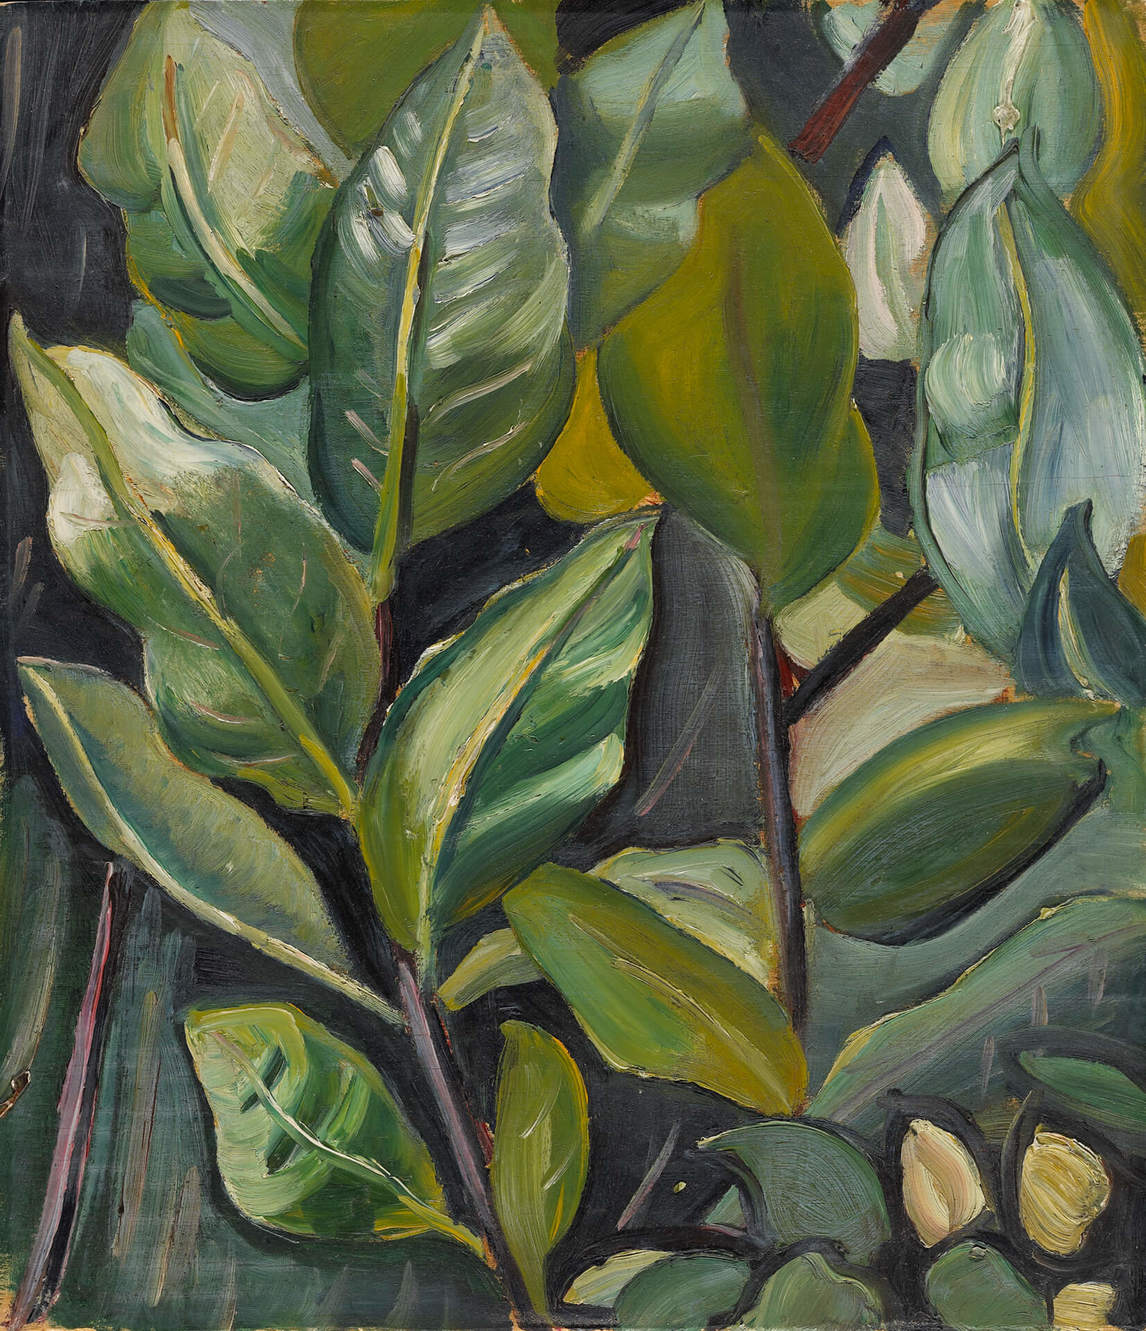 Art Canada Institute, Prudence Heward, Leaves (Study for Portrait of Barbara), c. 1933